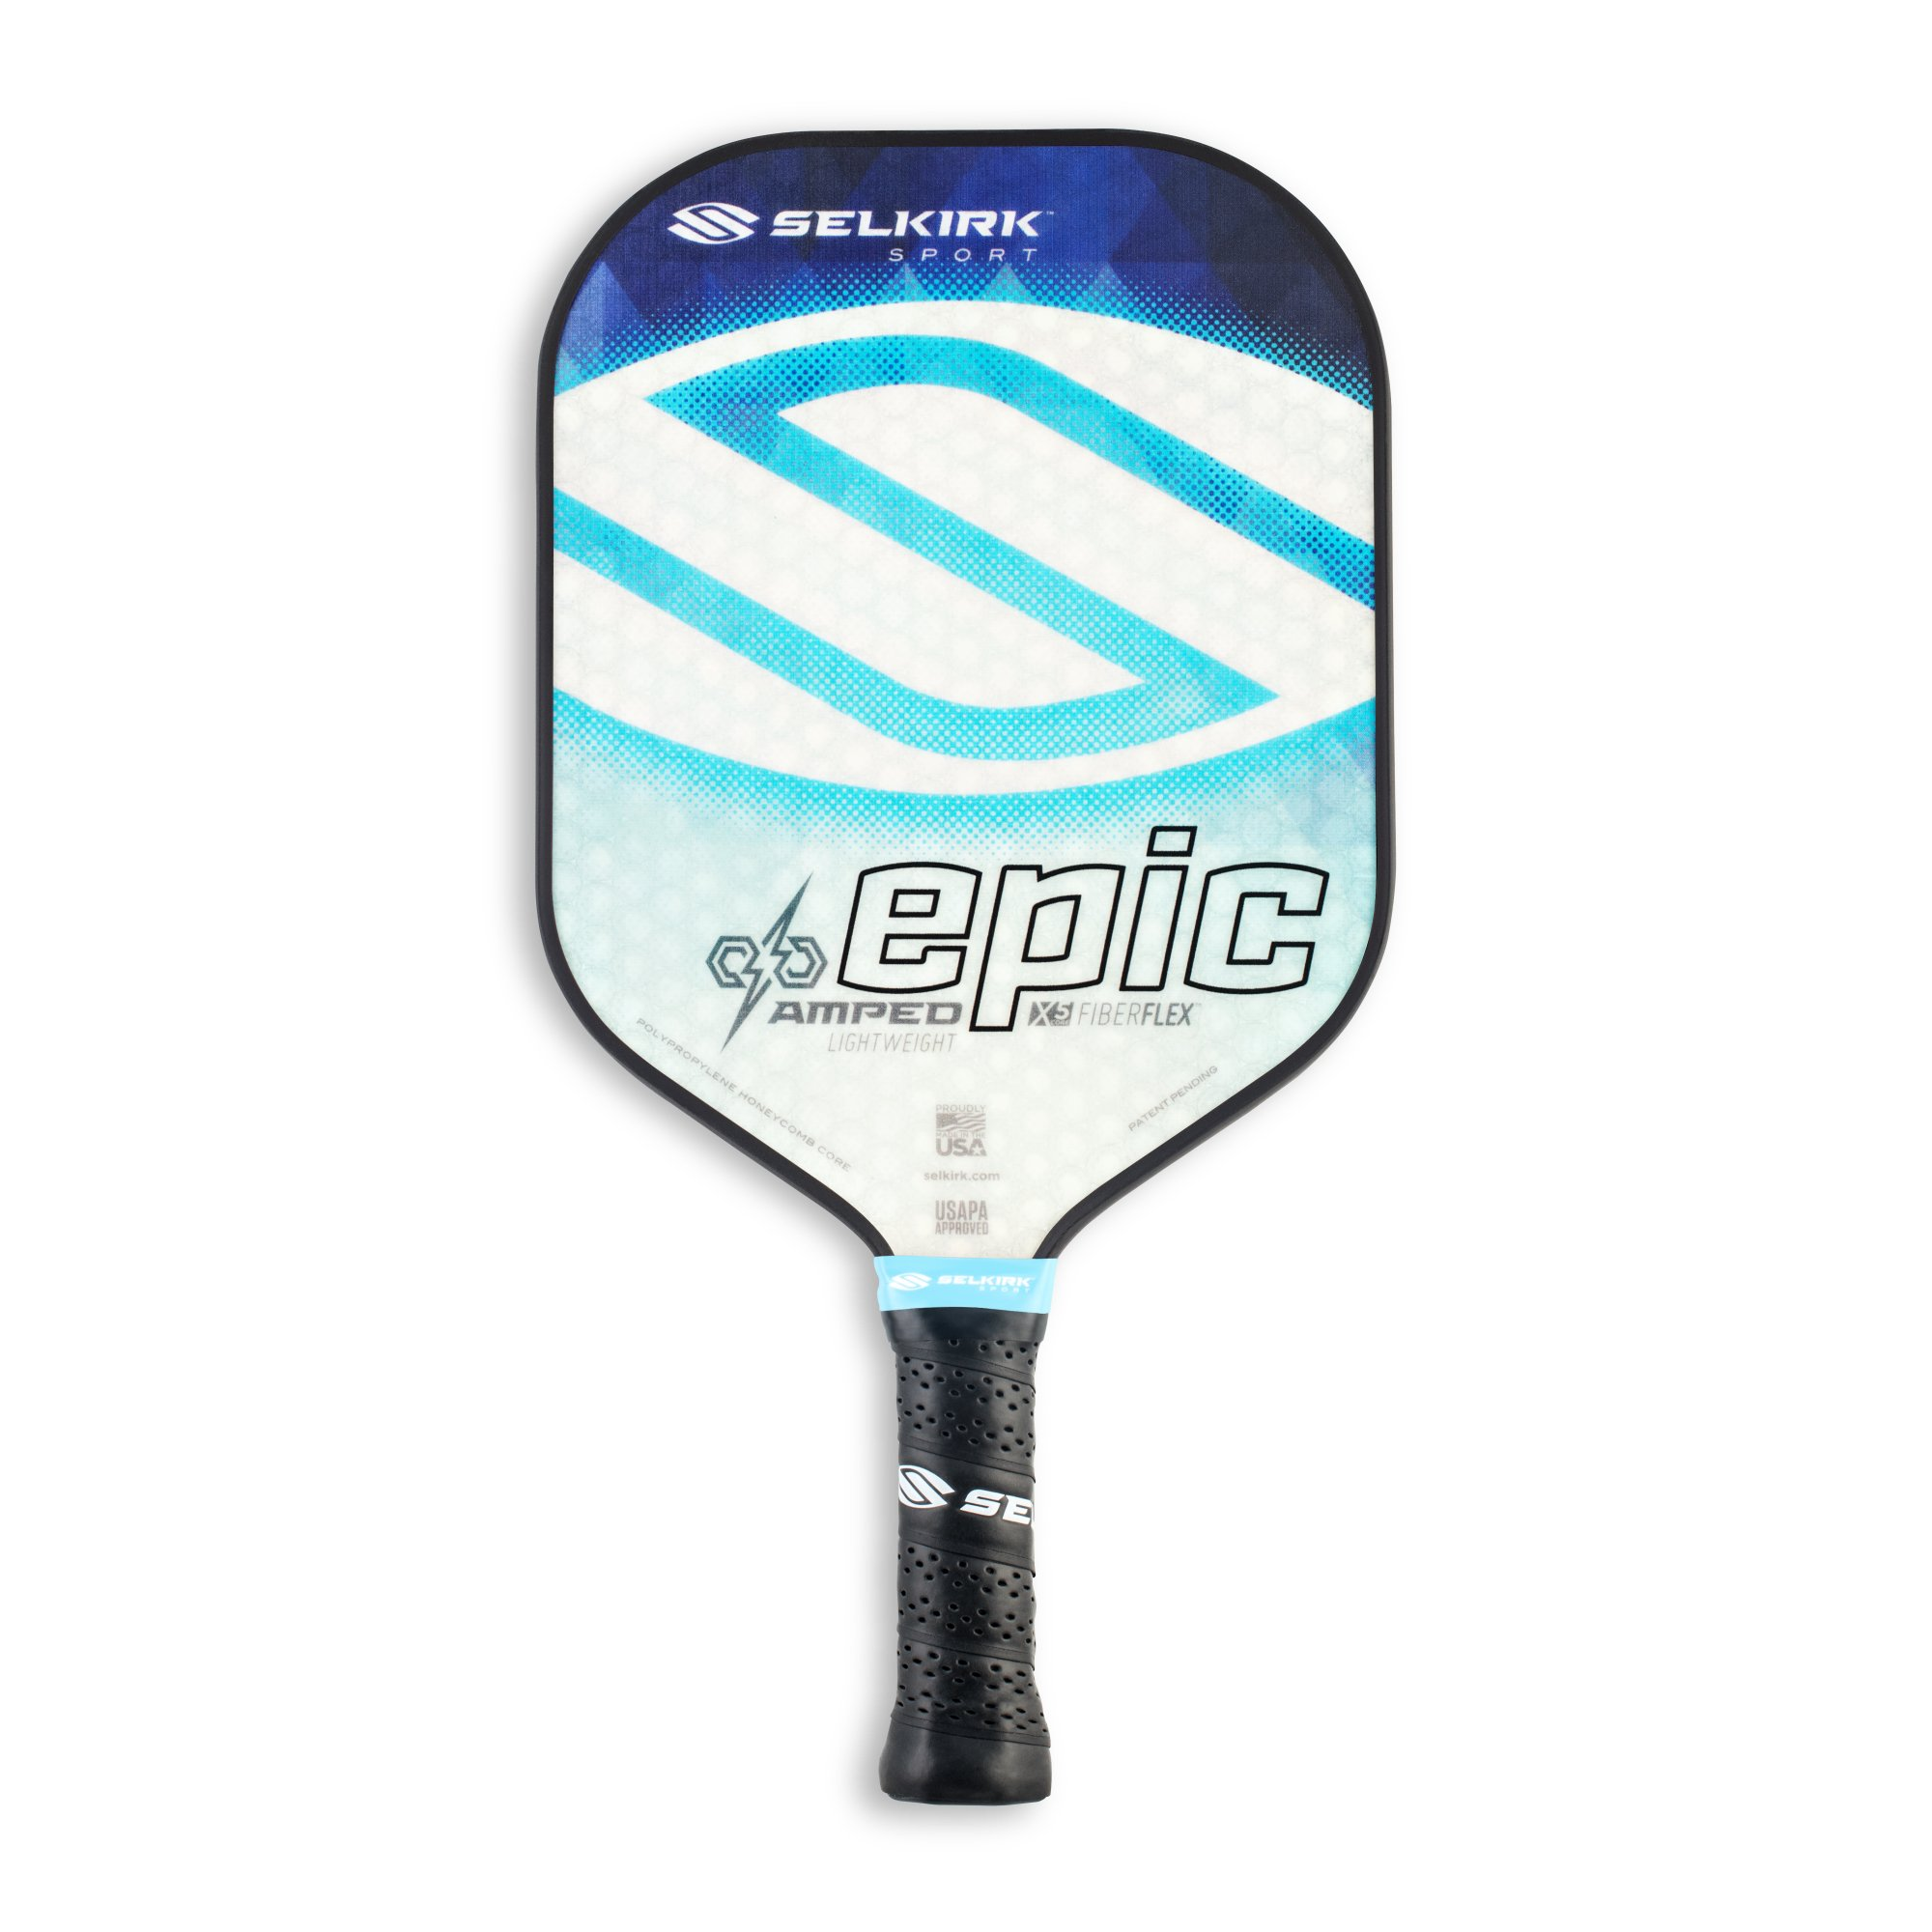 Selkirk Amped Pickleball Paddle - USAPA Approved - X5 Polypropylene Core - FiberFlex Fiberglass Face - 5 Sizes: Epic, S2, Omni, Maxima, and INVIKTA (Epic Lightweight - Sapphire Blue)